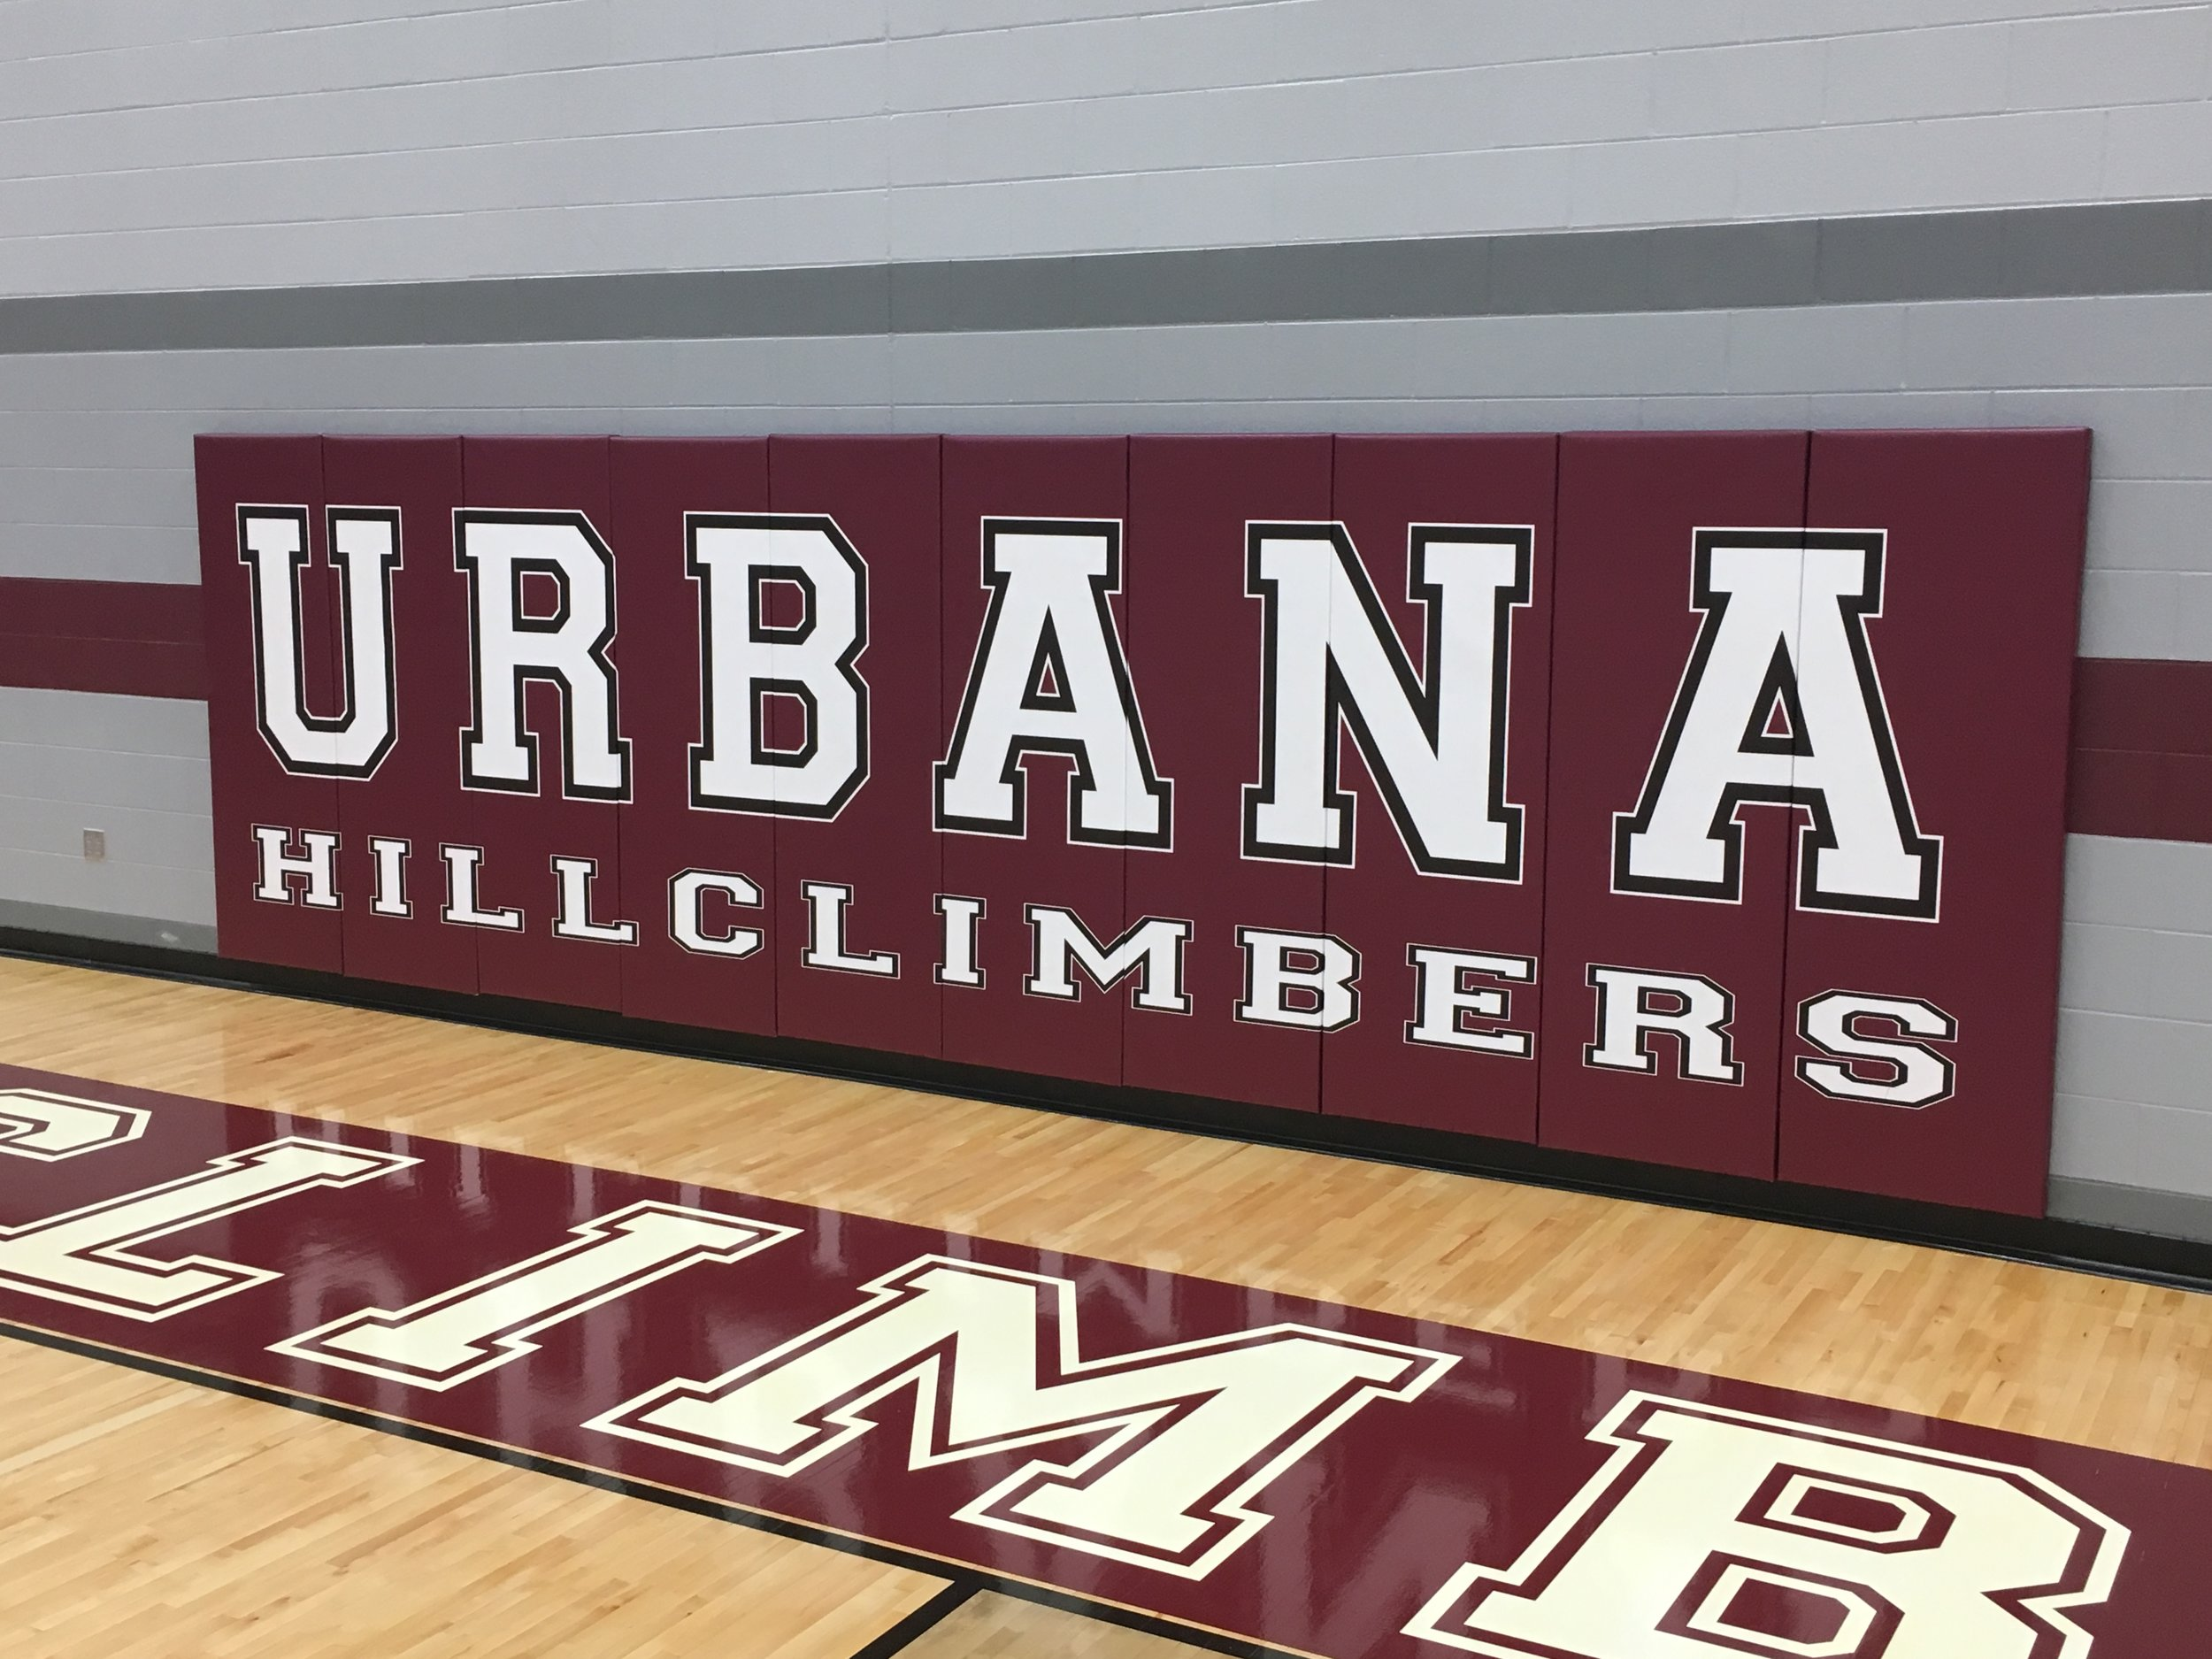 - Project Name: Urbana High School, Urbana, OHPrime Contractor: Peterson ConstructionArchitect: Fanning Howey ArchitectureProject Description: Delivered and installed Draper gymnasium equipment and graphic wall pads.